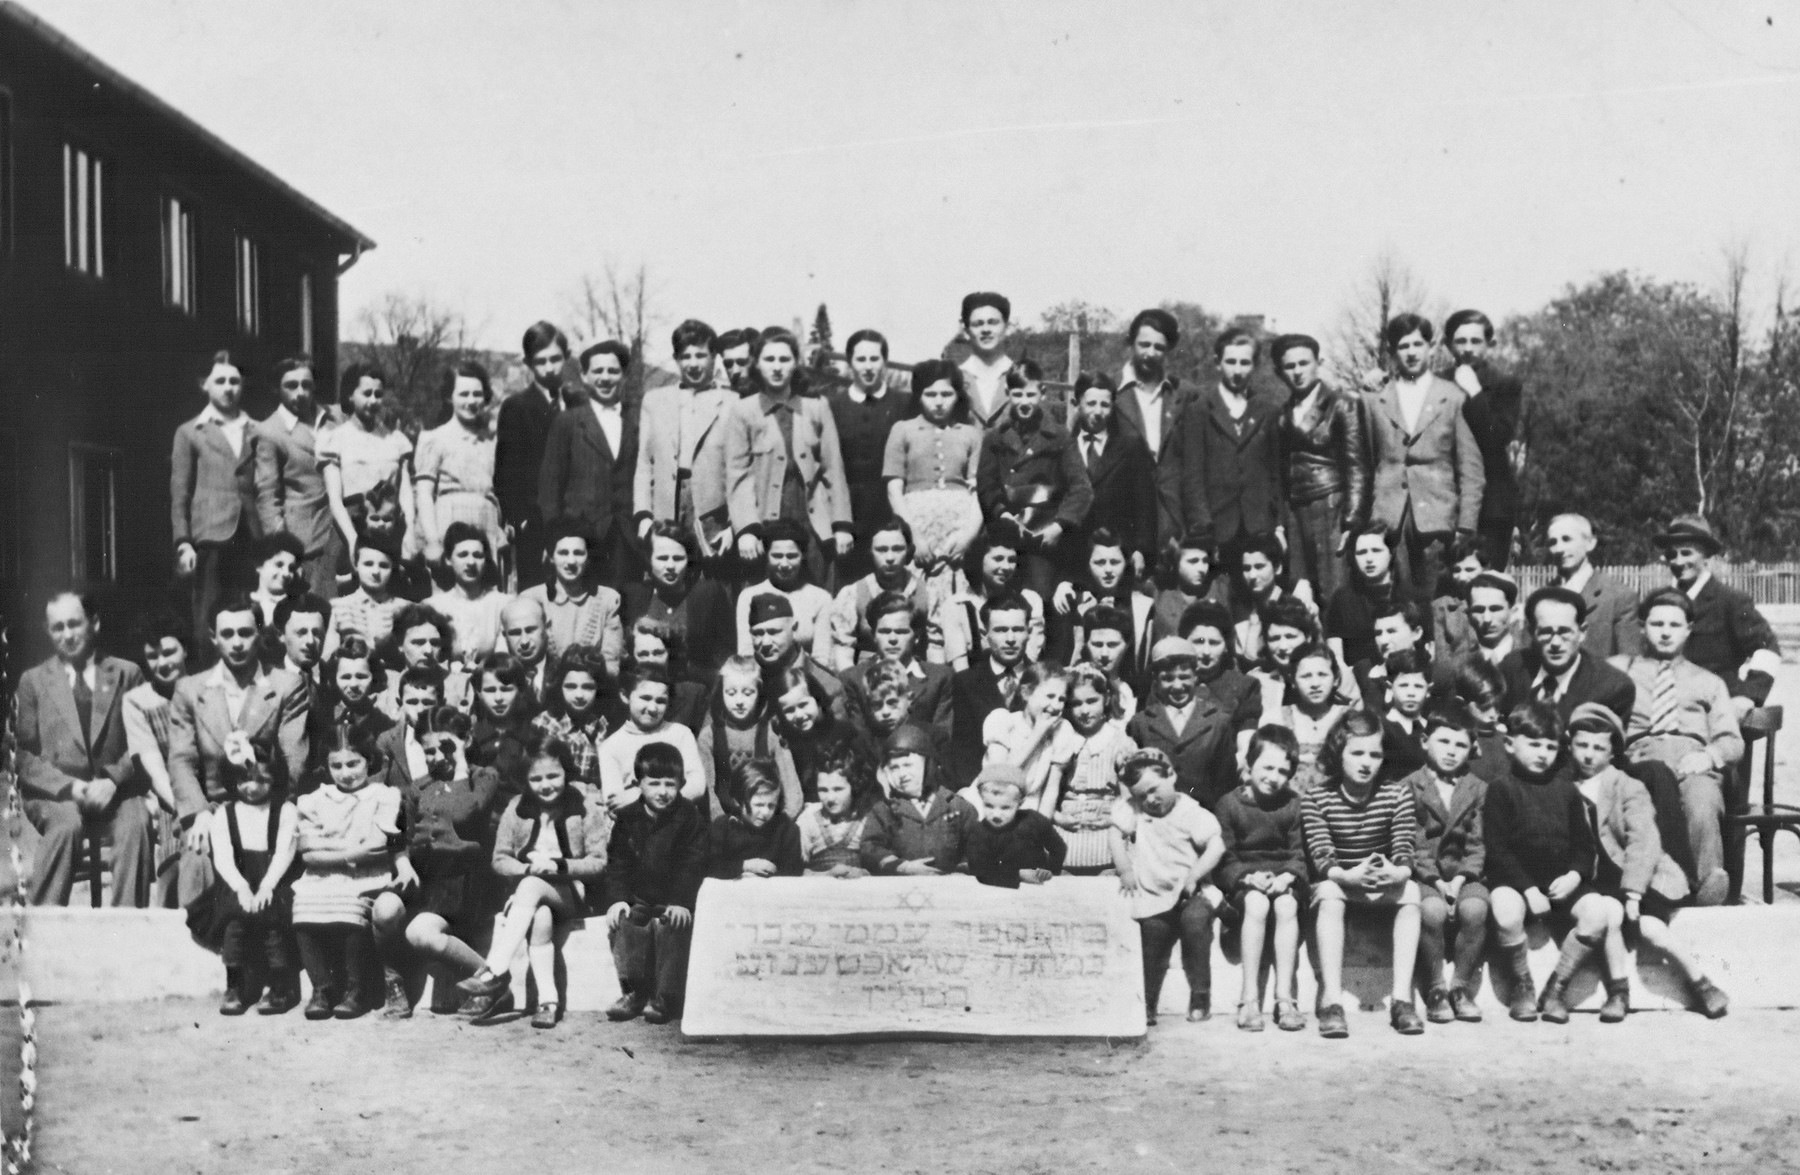 Group portrait of the students and teachers of the Hebrew primary school in the Schlachtensee displaced persons camp.    Among those pictured is Harold Fishbein (third row from the front, center wearing the soft military cap) and Regina Laks (fourth row center).